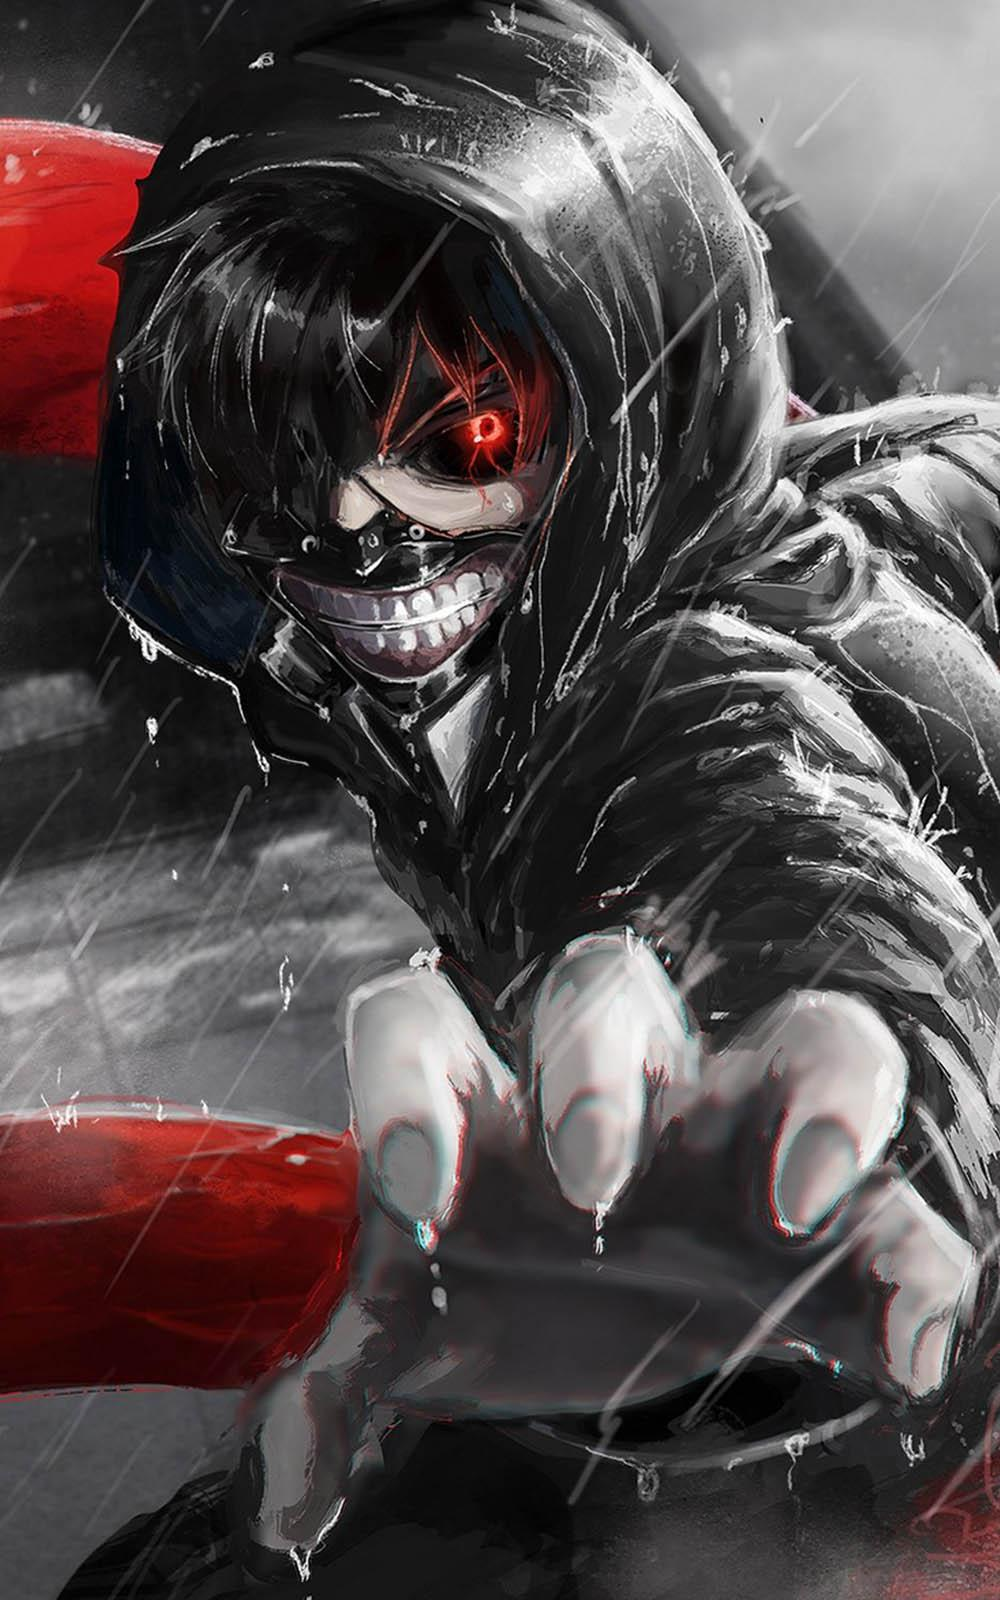 Tokyo Ghoul Android Phone Wallpapers - Wallpaper Cave